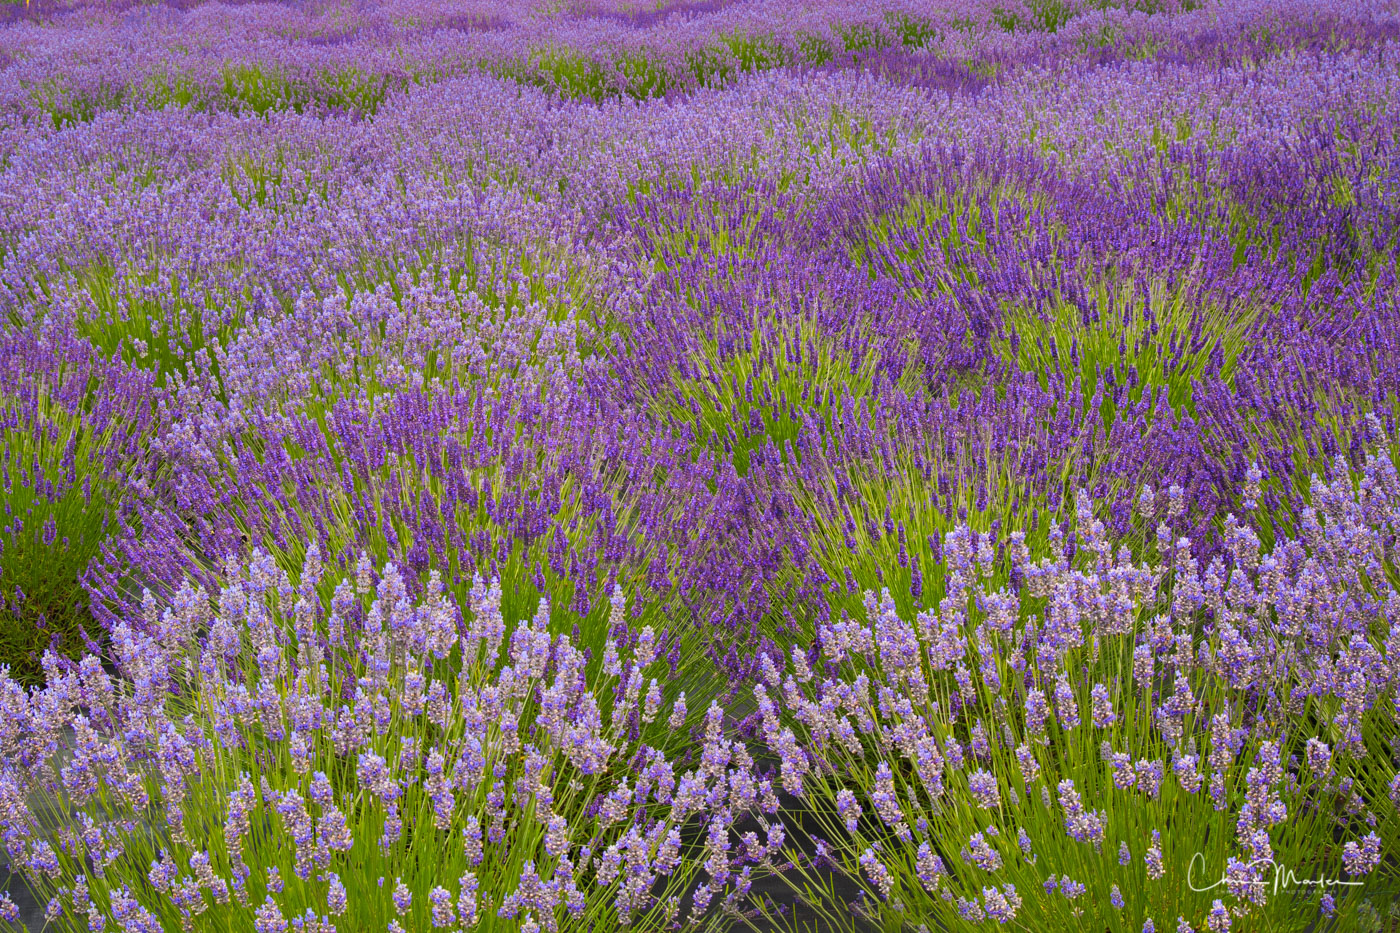 purple haze, Lavender fields, Lavendar fields, purple lavender fields, photo